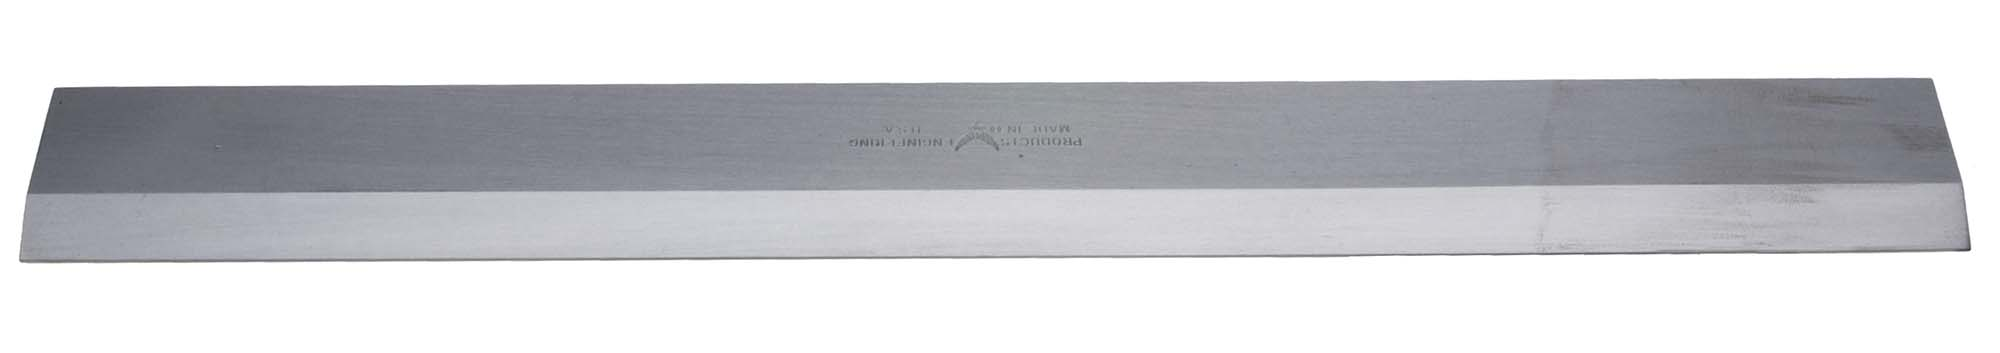 "PEC Tools 4800-018B 18"" Beveled Straight Edge"